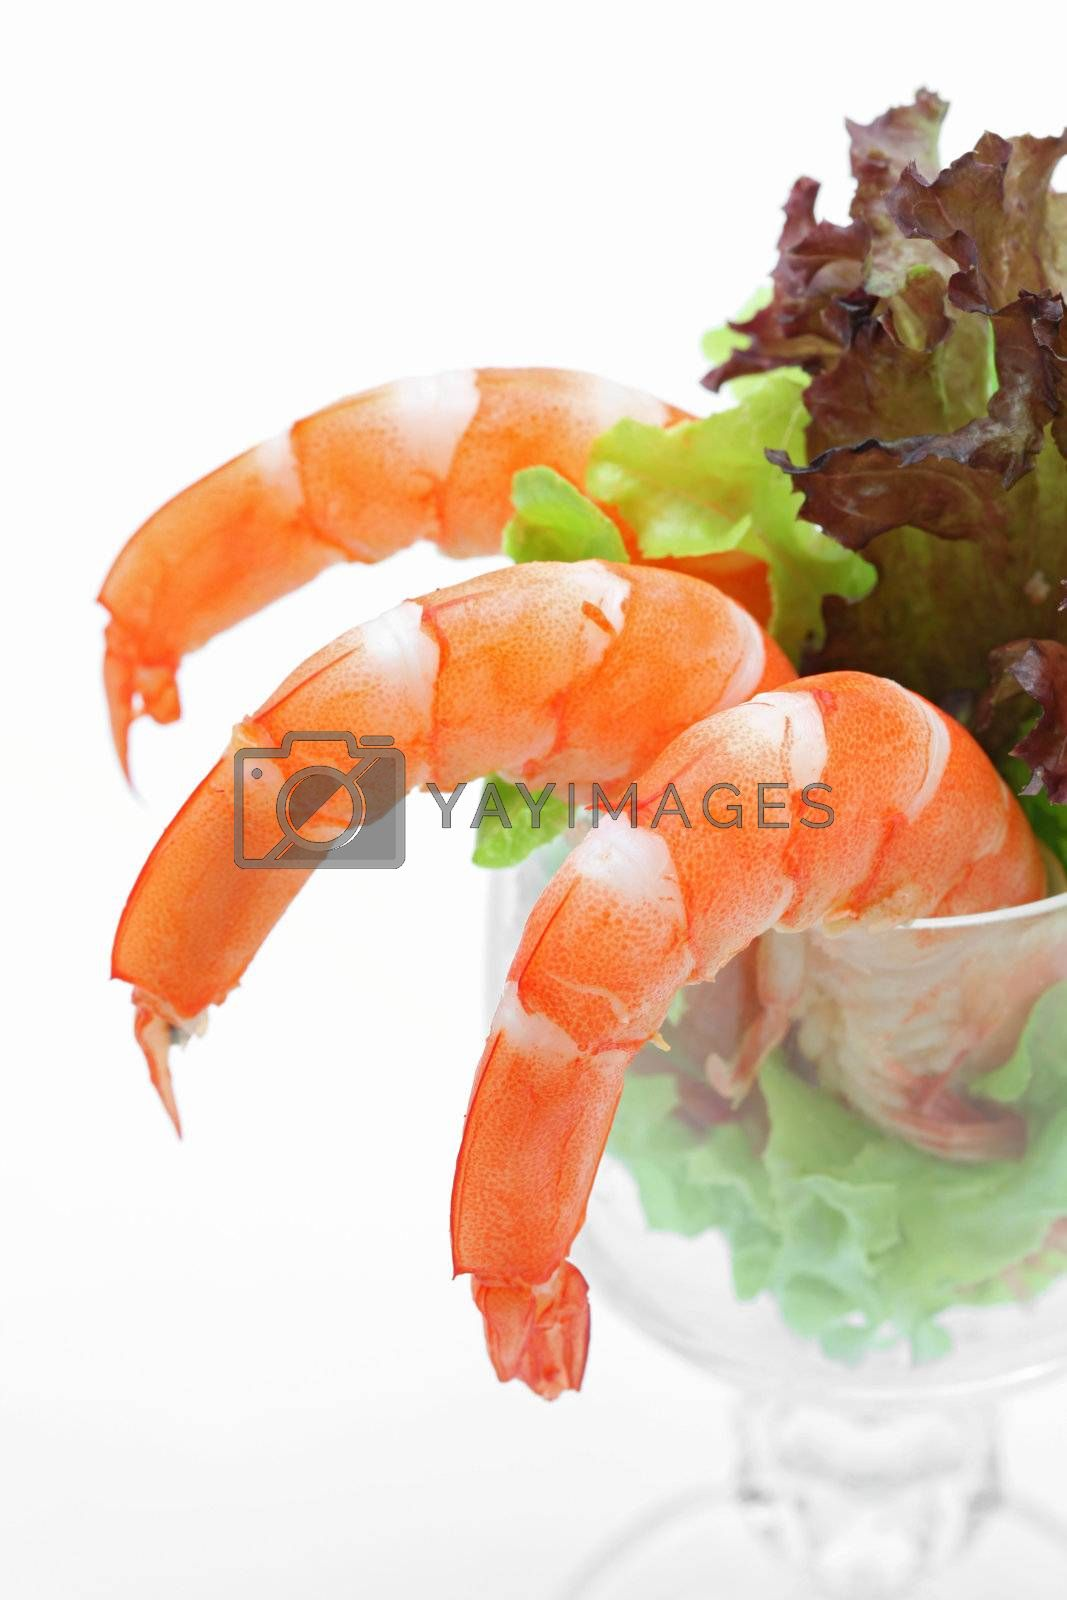 Shrimp cocktail in a martini glass with lettuce, closeup